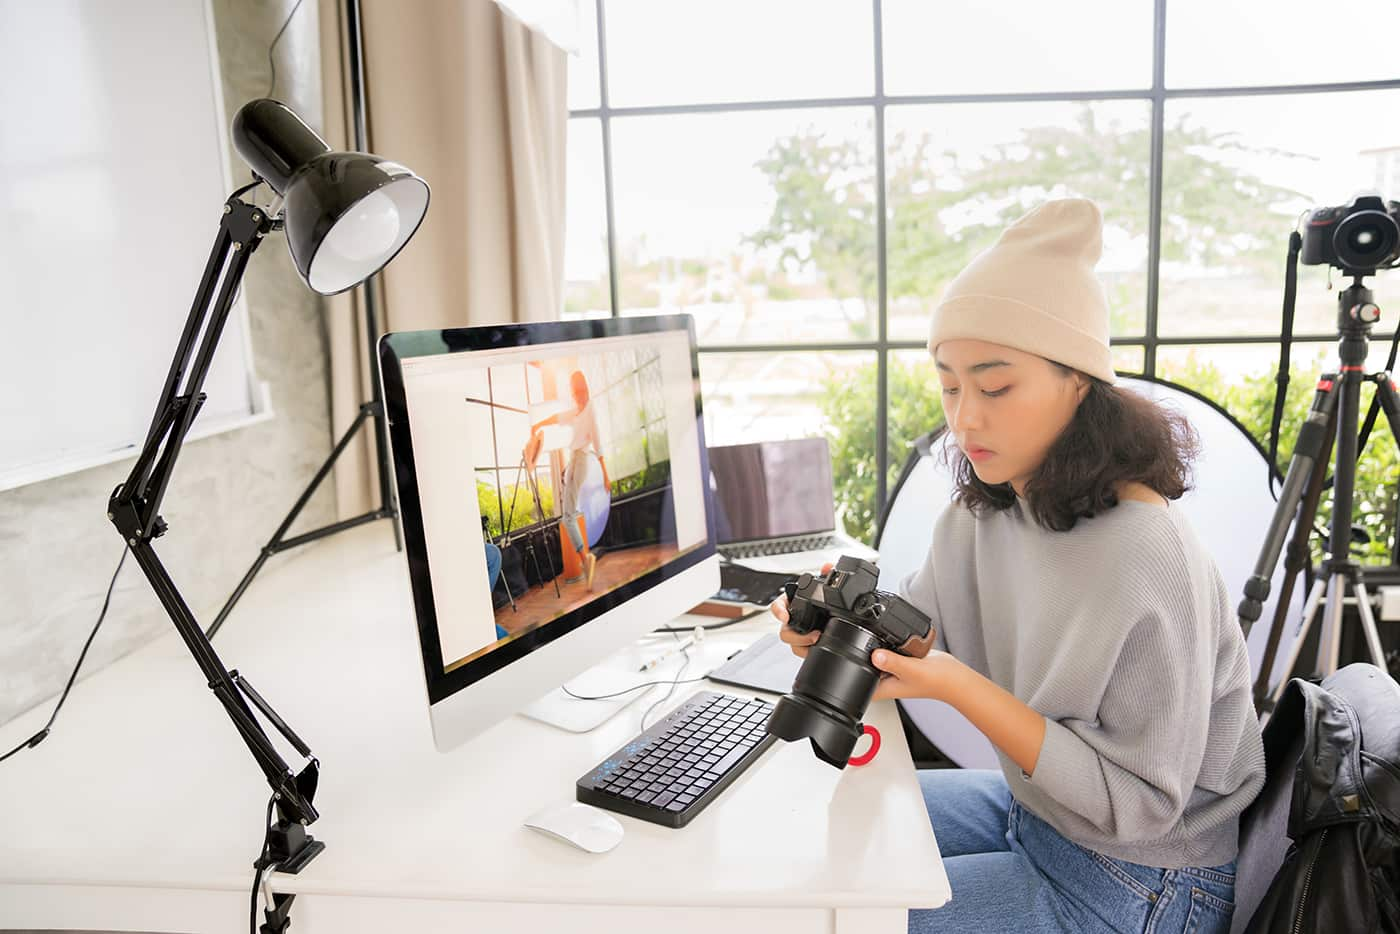 Top 5 Photography Schools and Colleges 2021